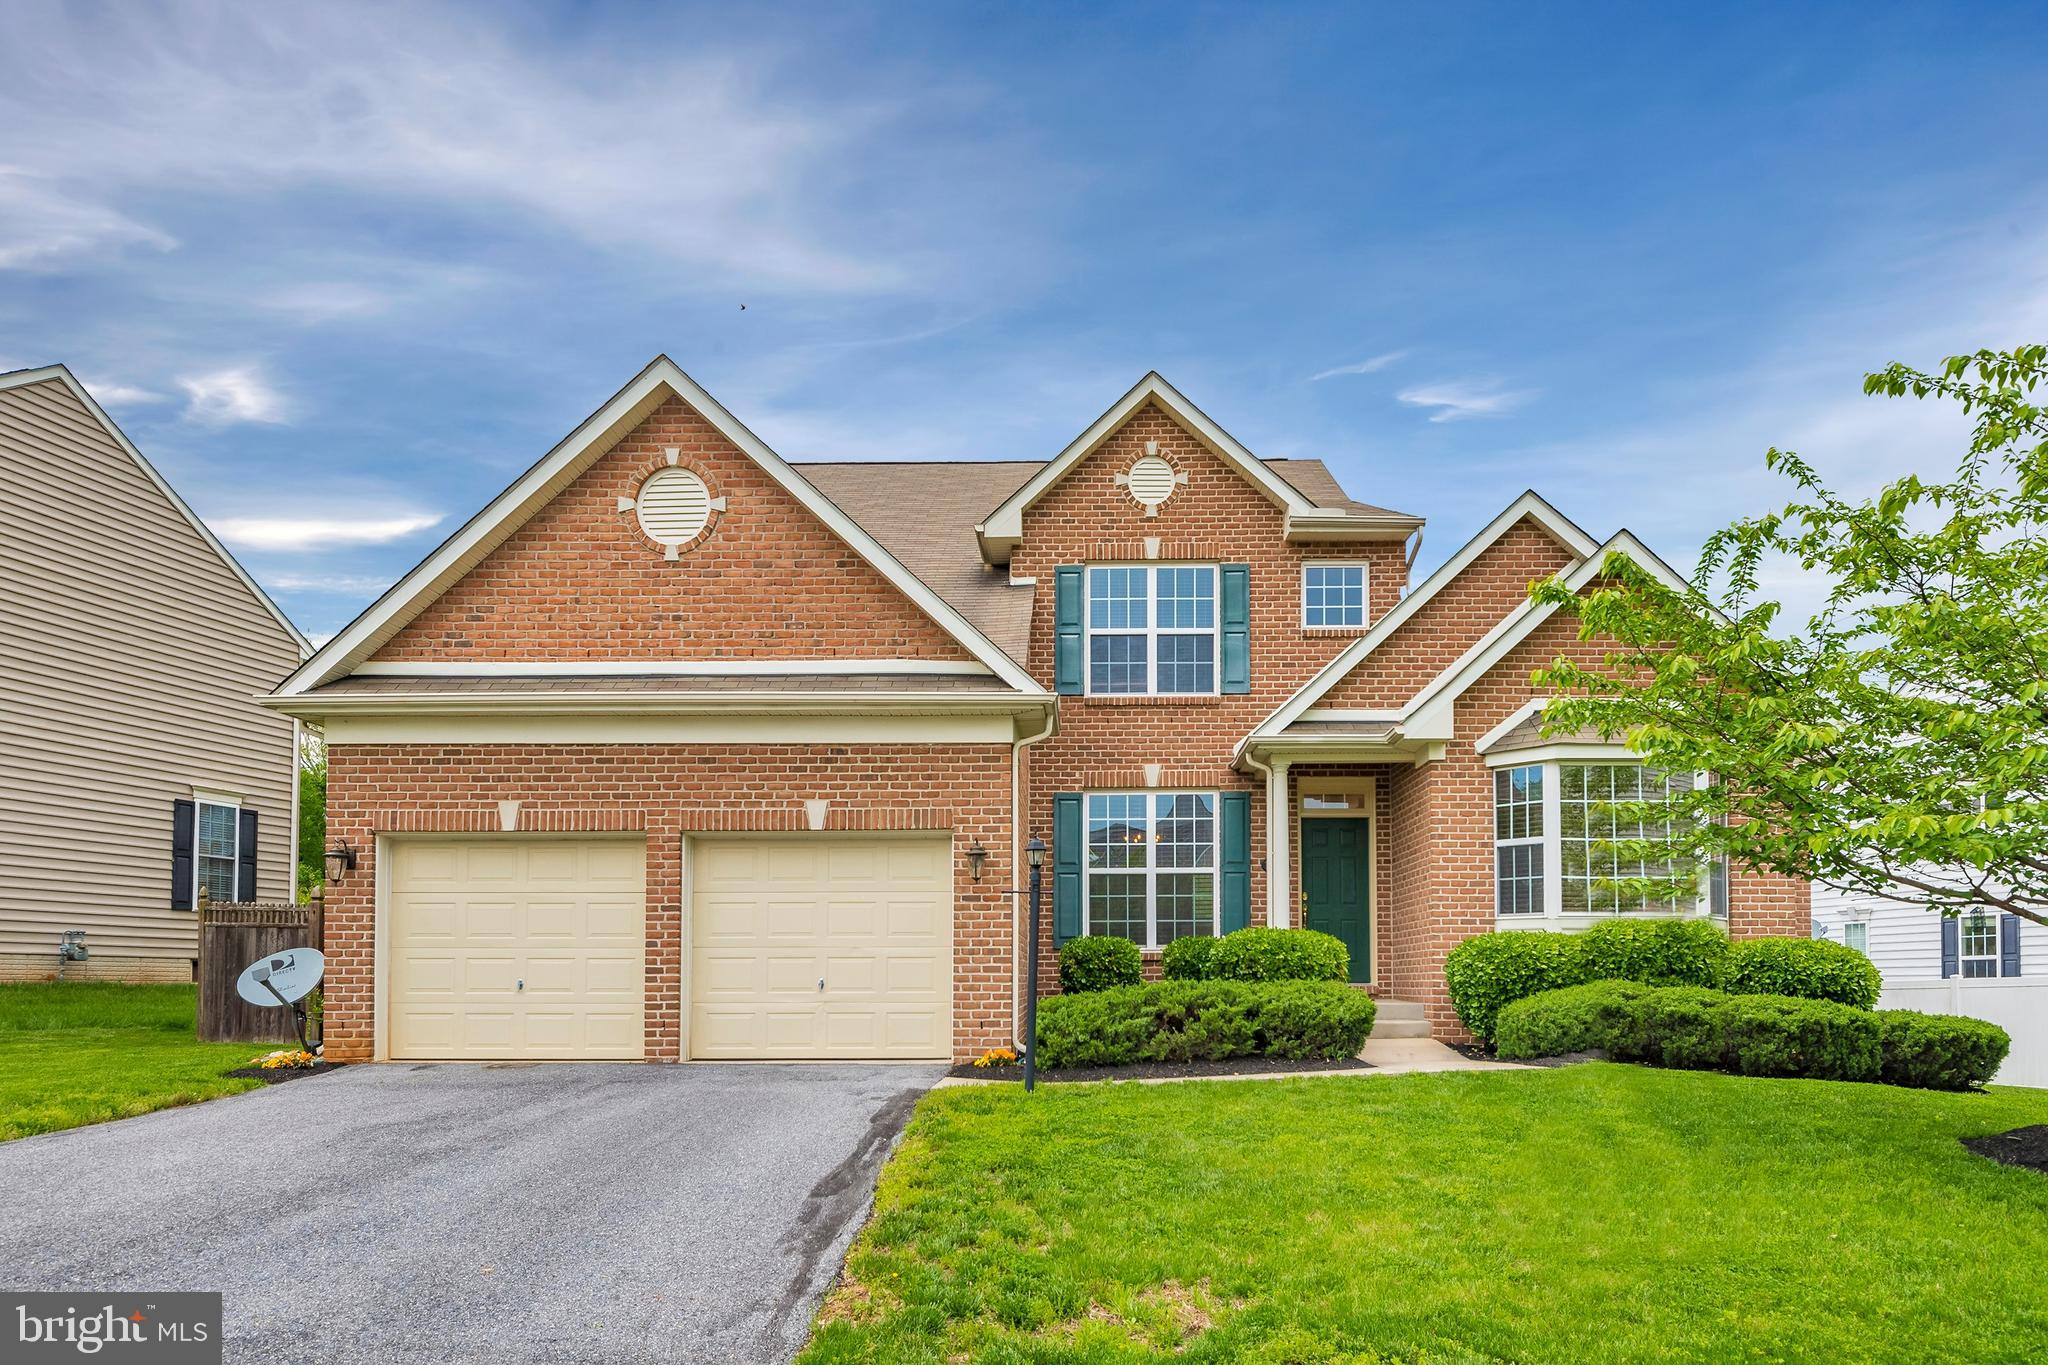 1723 CONRADS FERRY DRIVE, POINT OF ROCKS, MD 21777